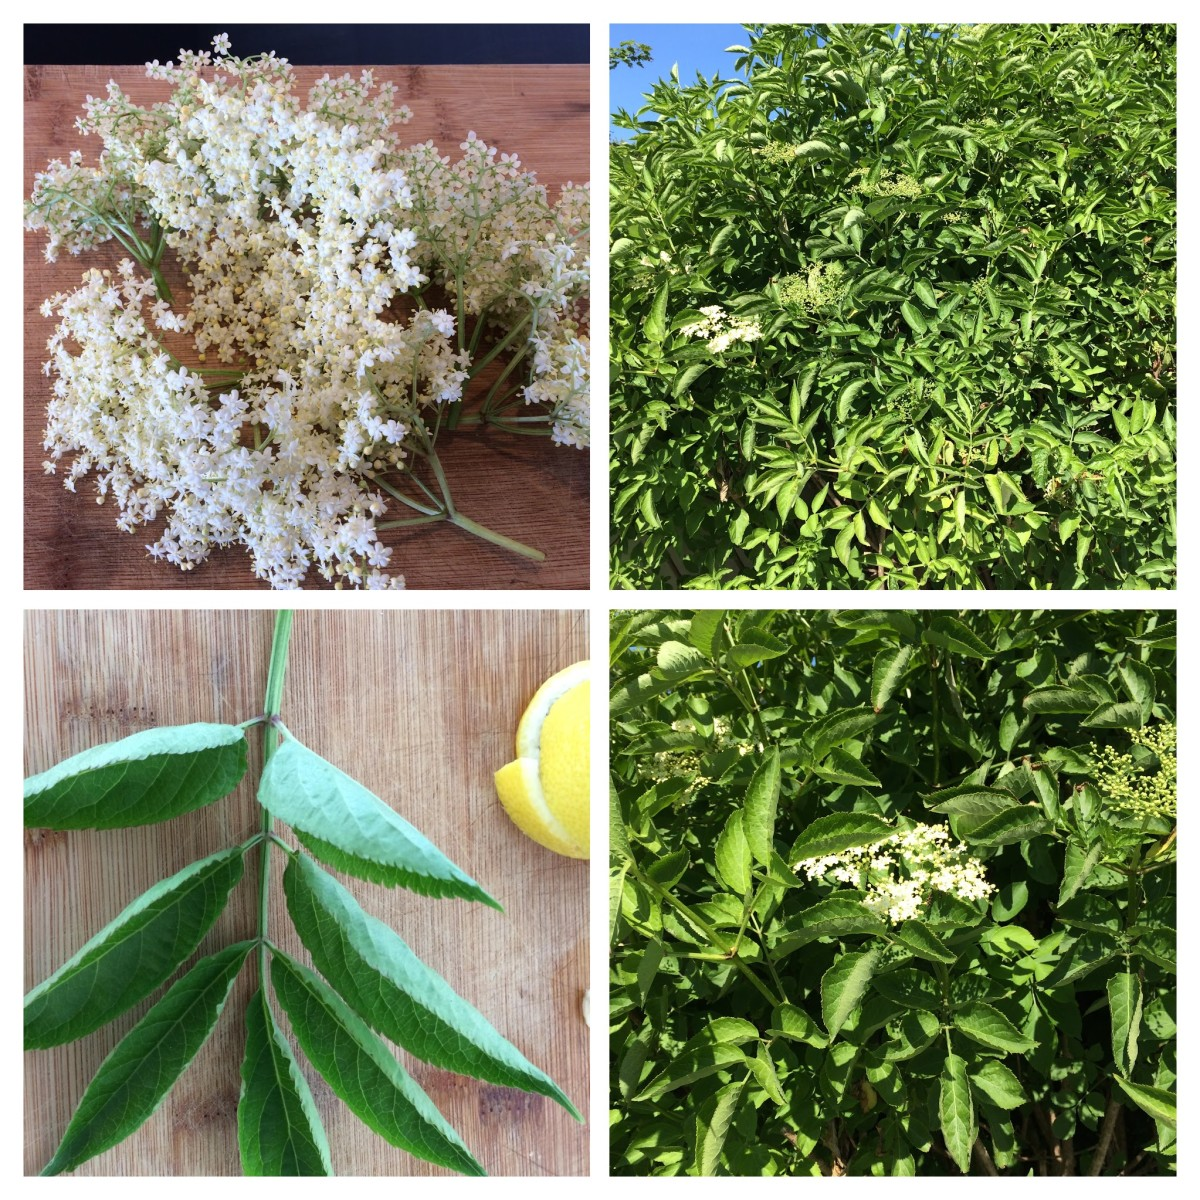 How to Make Elderflower Cordial: A Refreshing Summer Drink